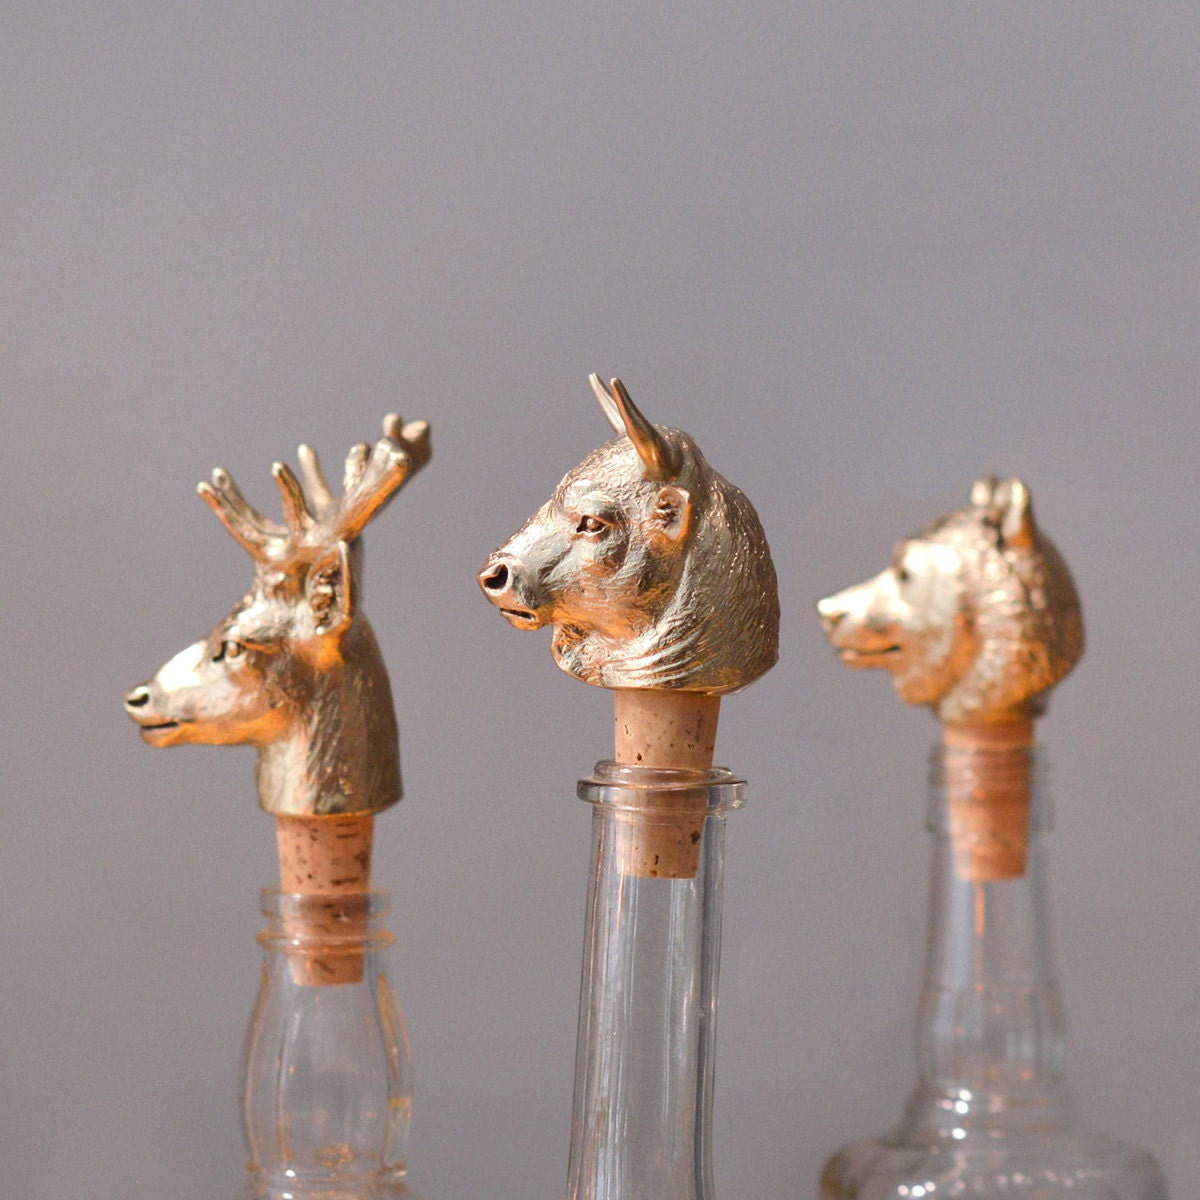 Animal head bottle stoppers from Etsy